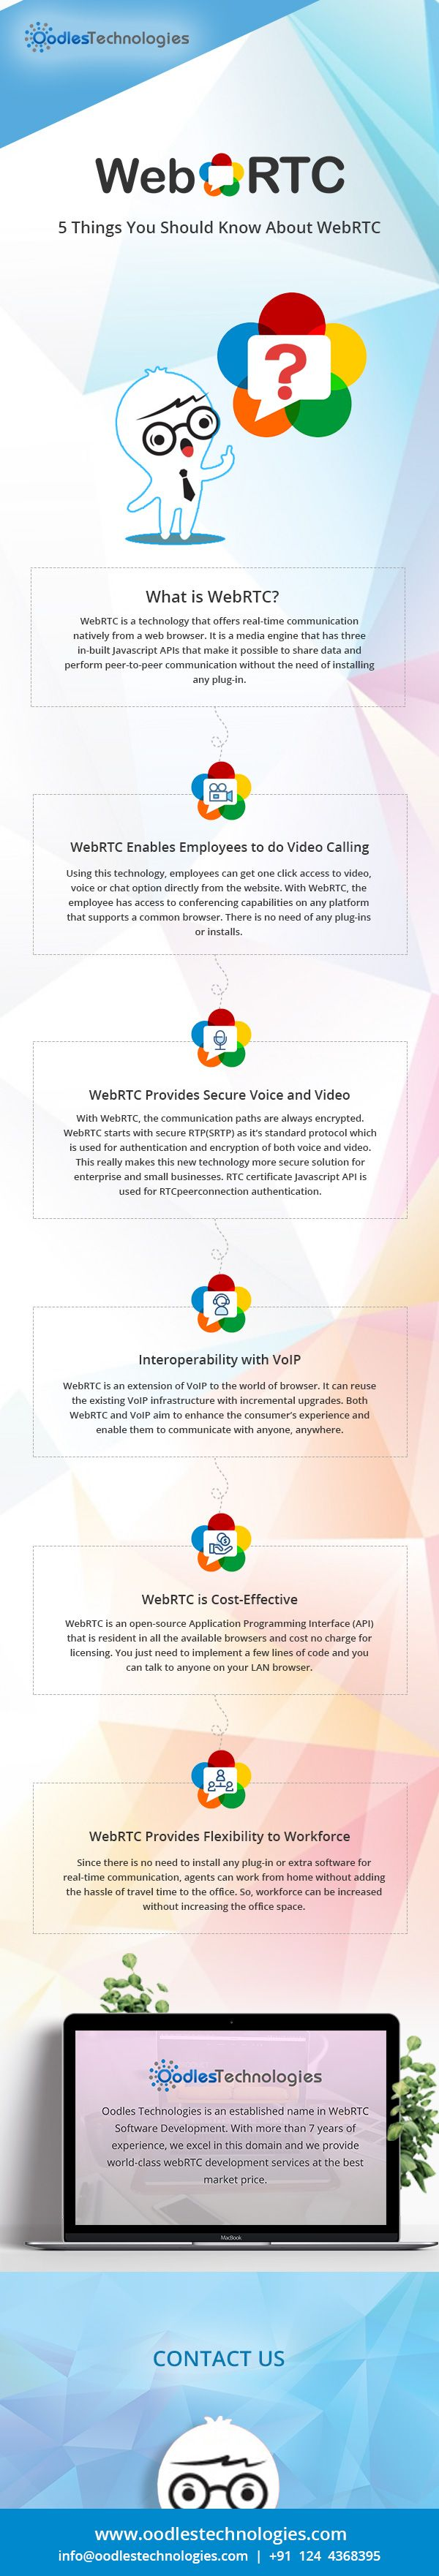 Oodles technologies is one of the leading WebRTC Service Provider based in India which provides its services worldwide as well.  VISIT :-http://www.oodlestechnologies.com/webrtc-mobile-app-development